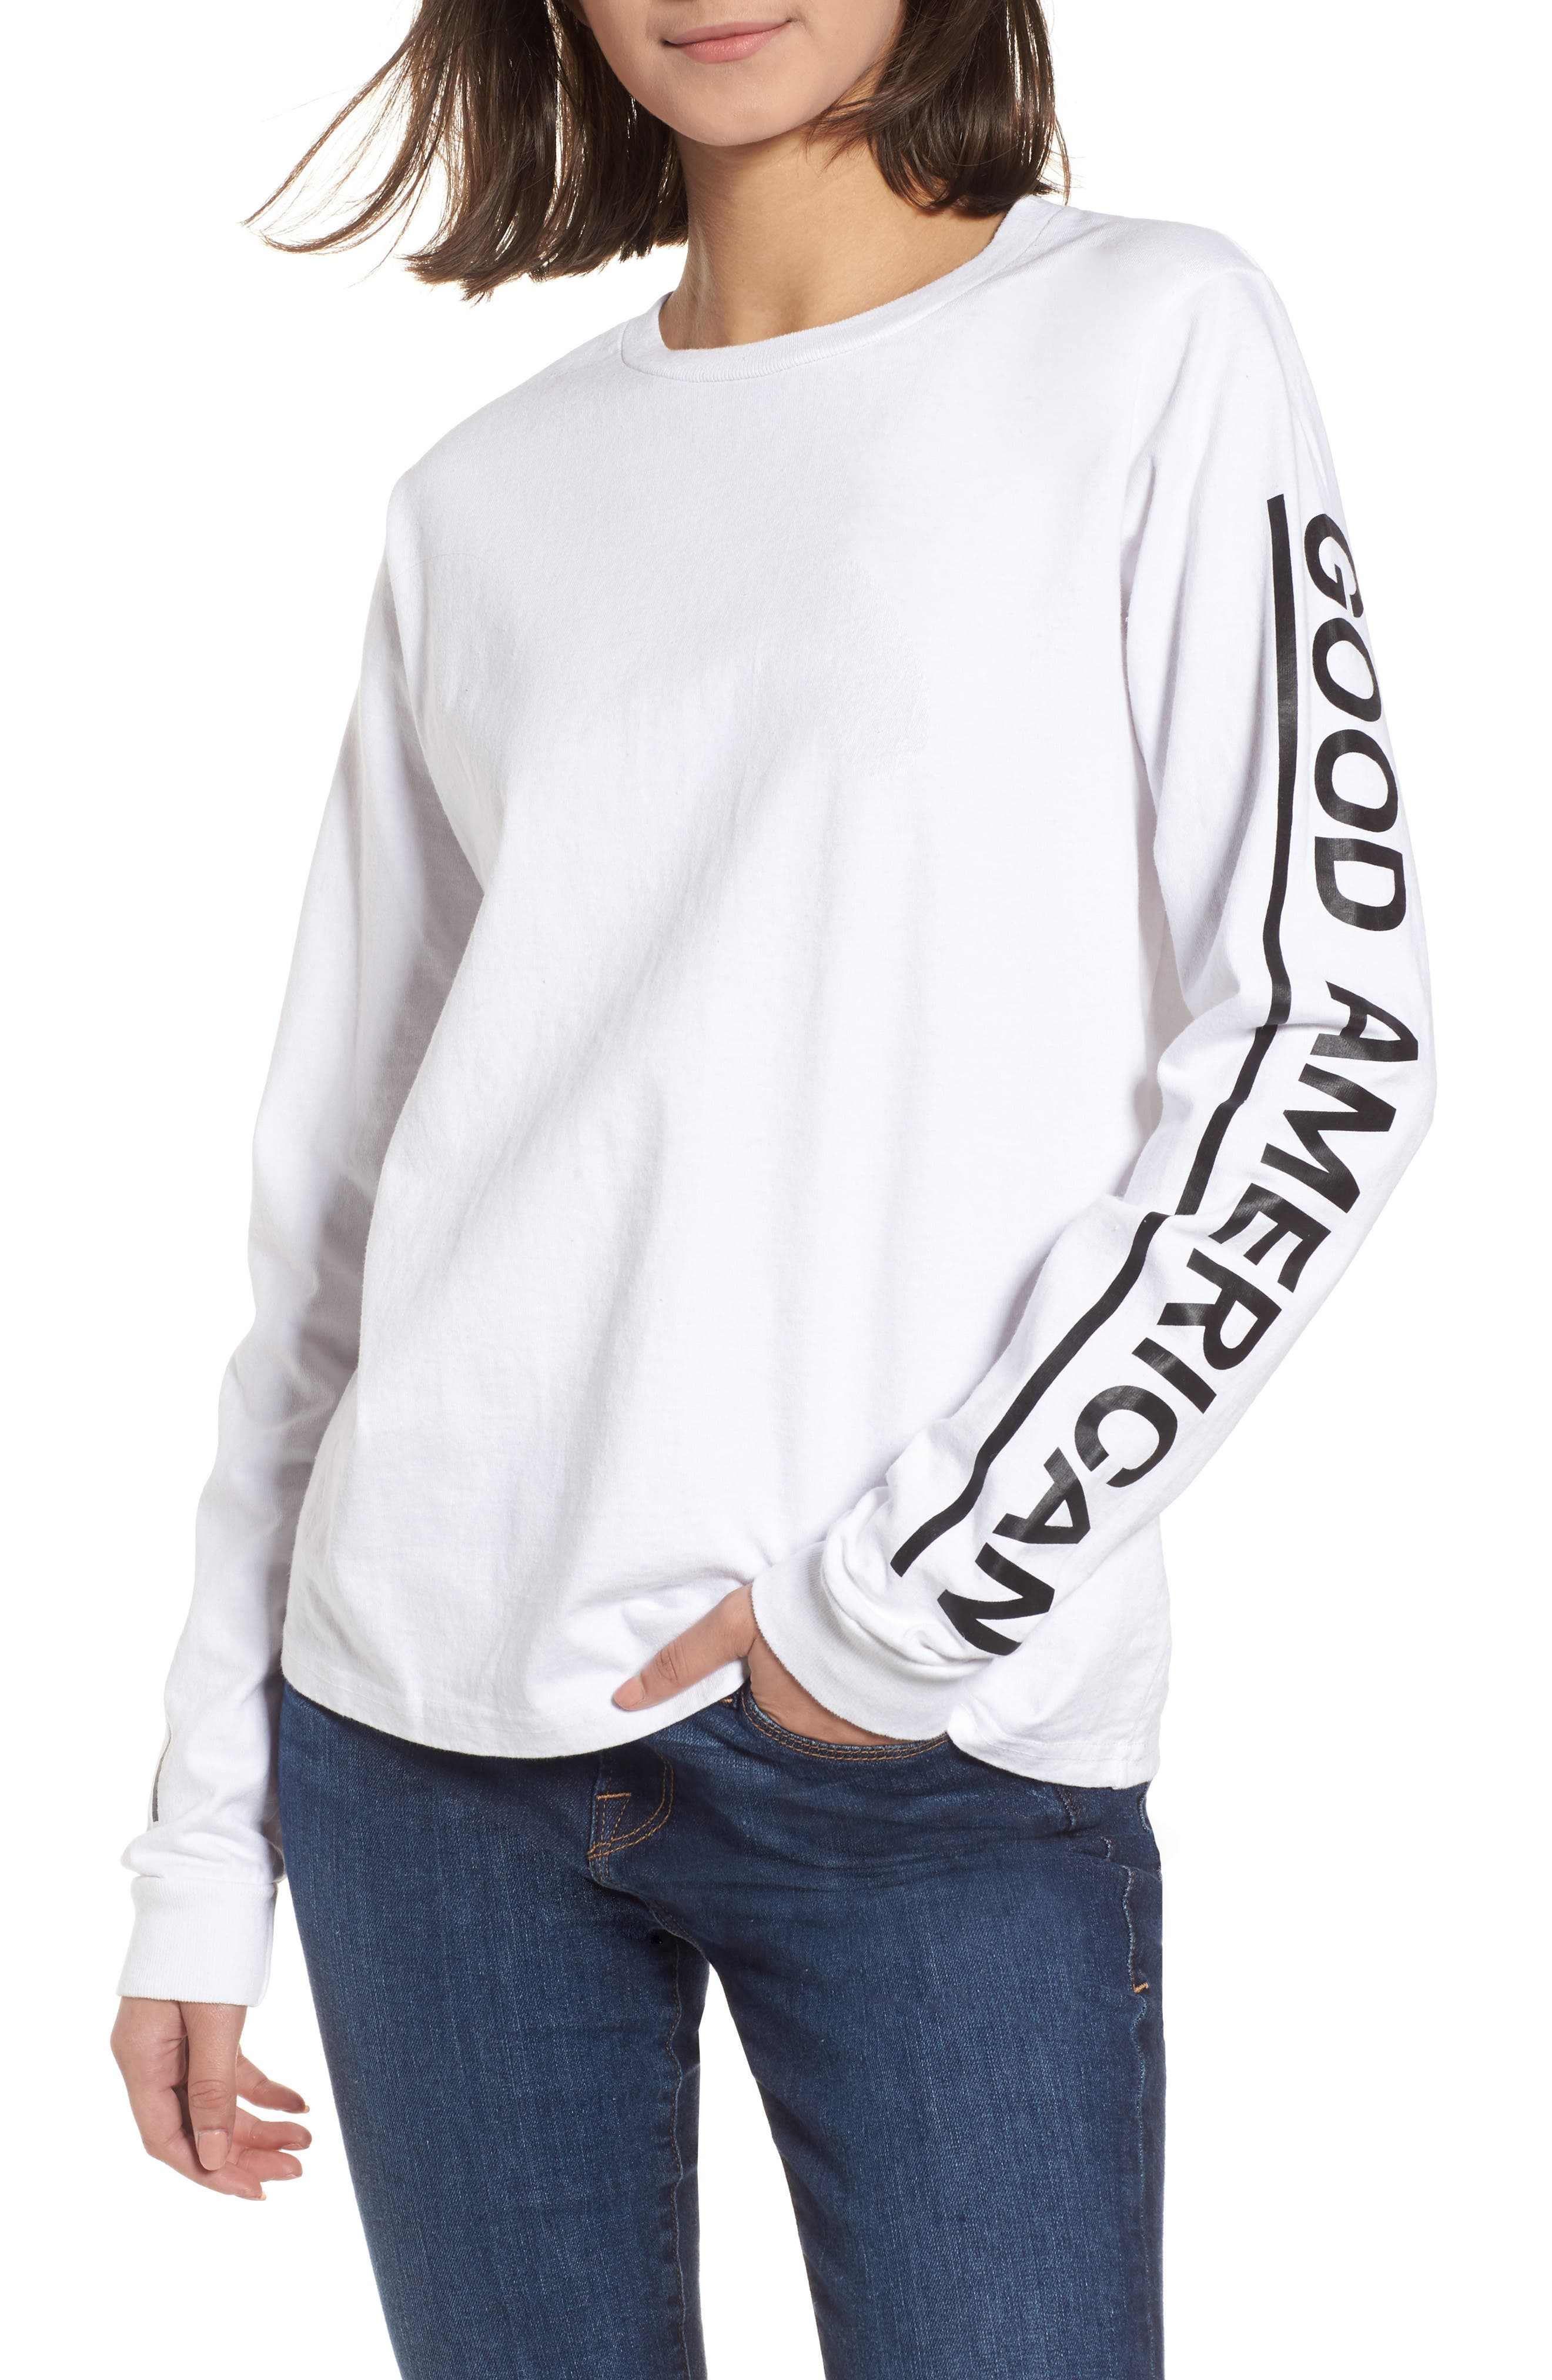 Goodies Long Sleeve Graphic Tee,                         Main,                         color, 120